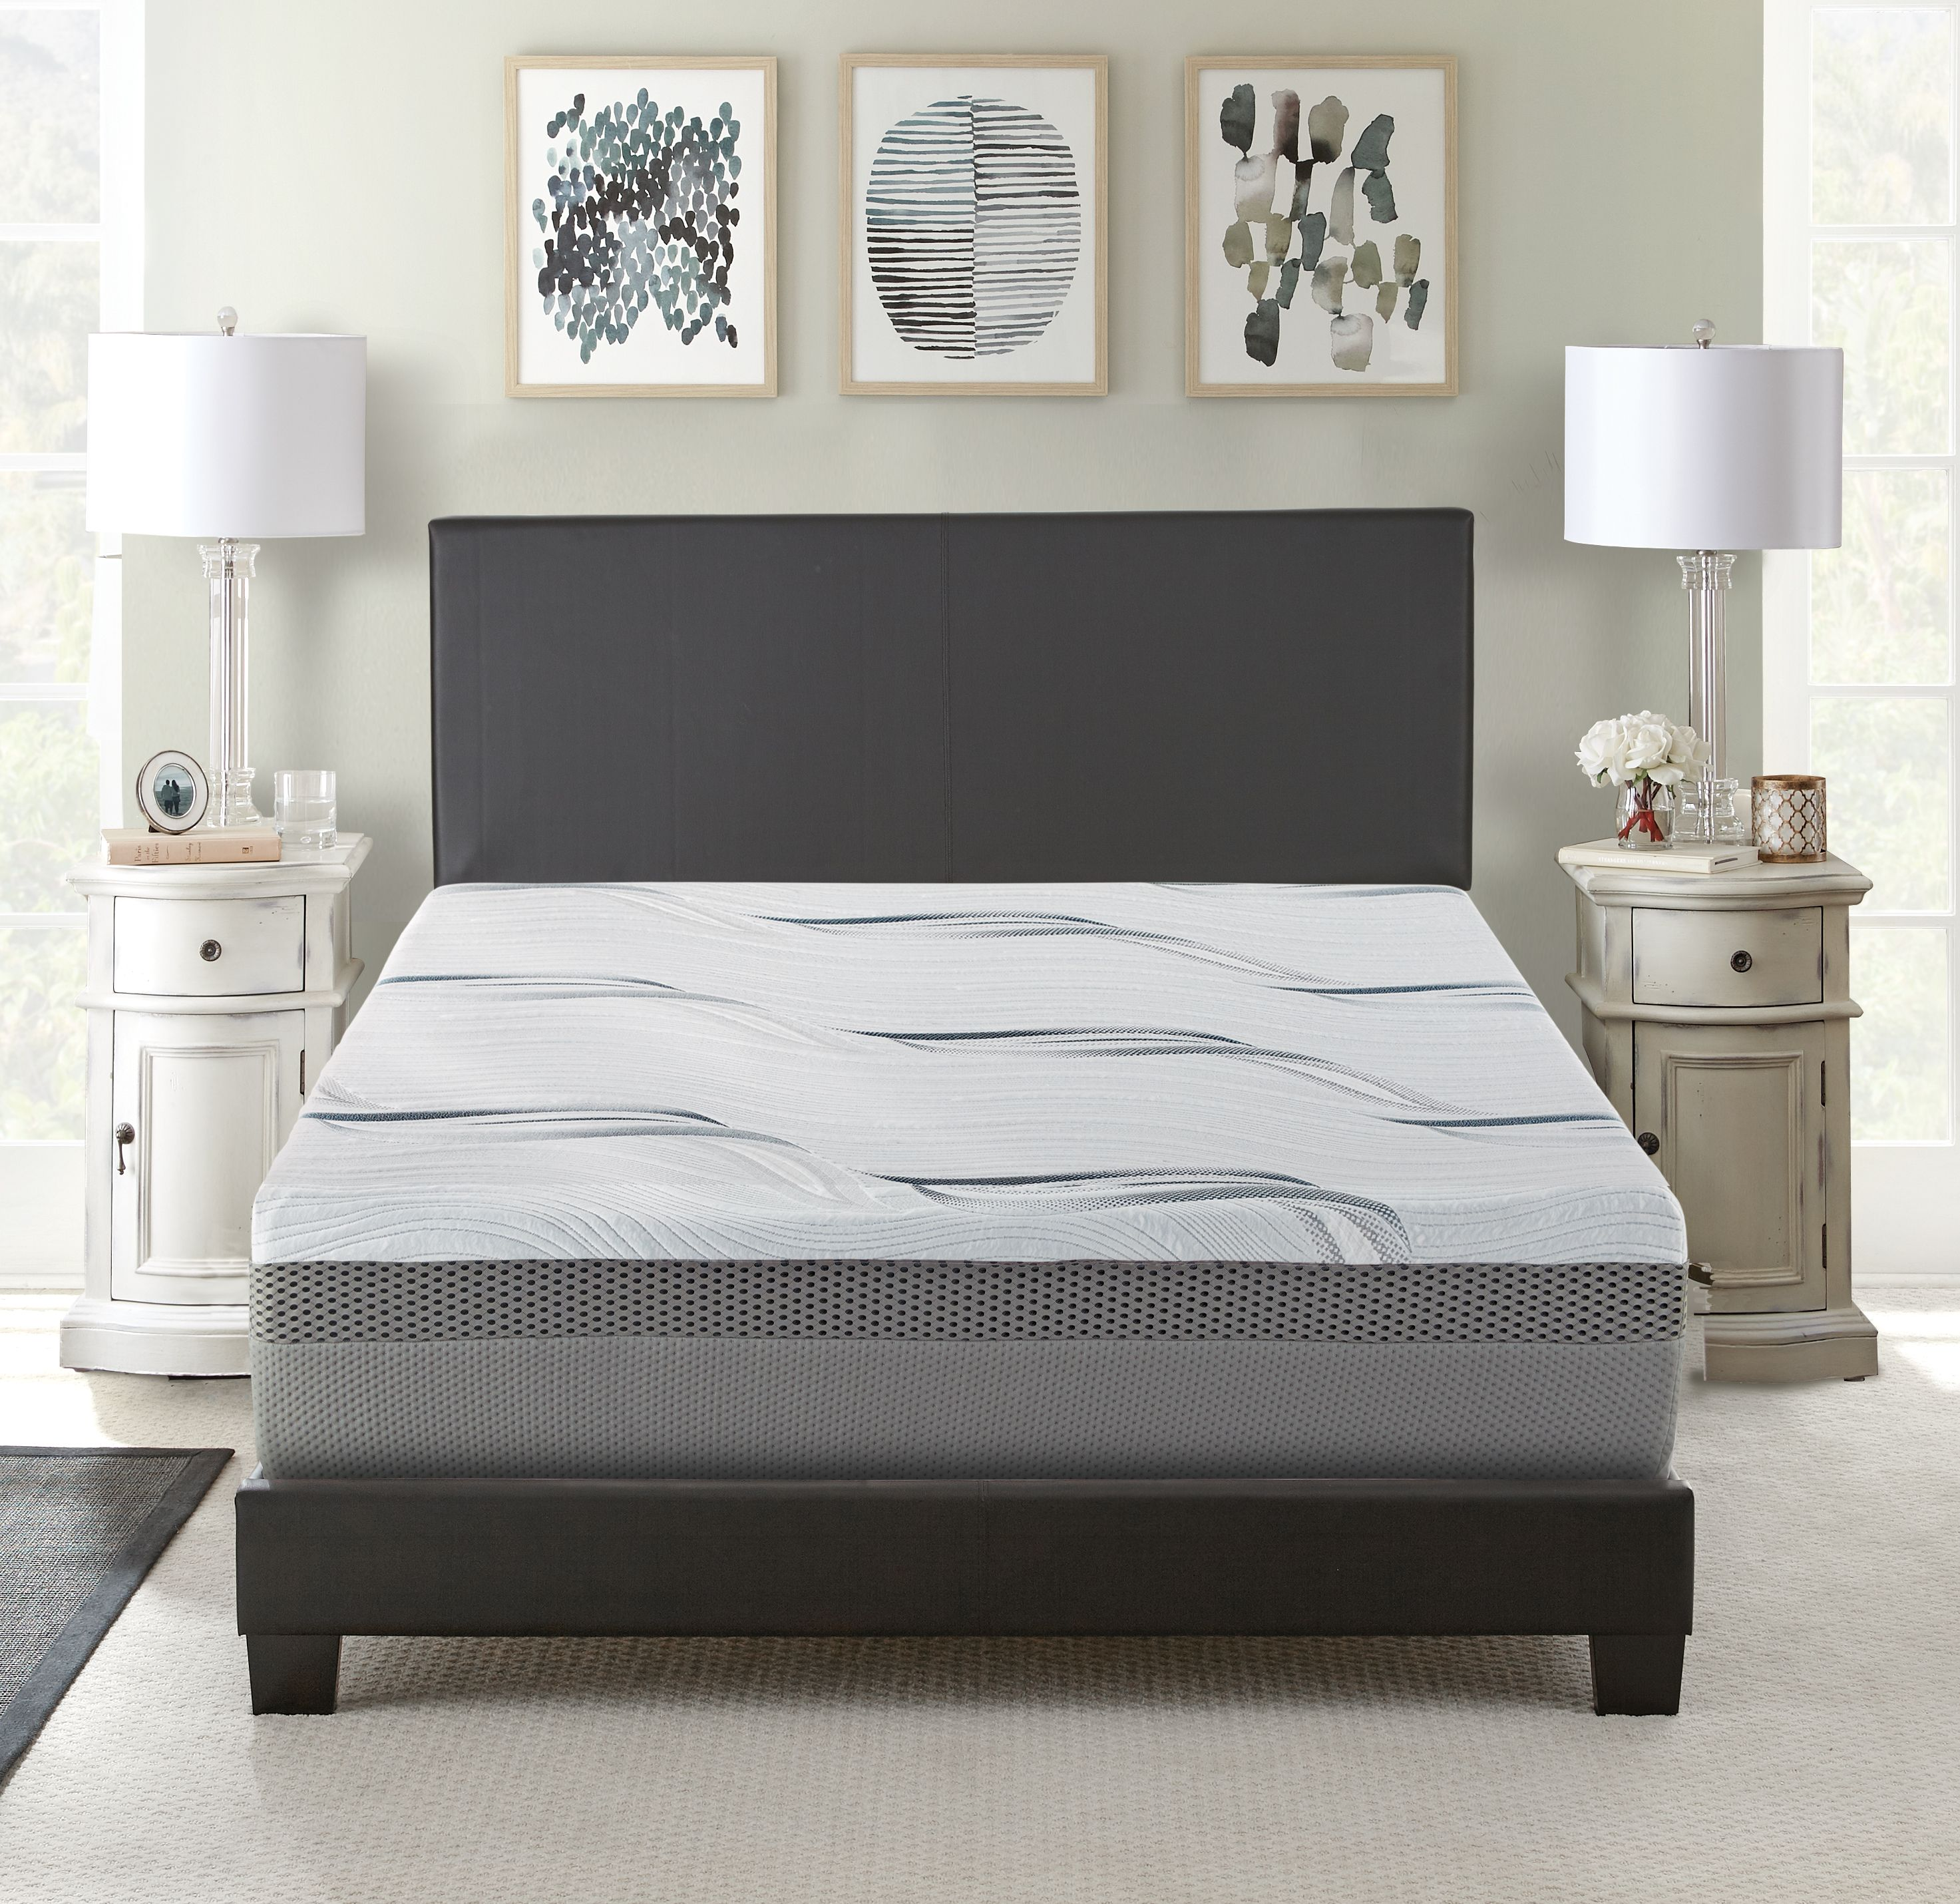 Contura III 12 Inch Medium Firm Memory Foam Mattress Bed